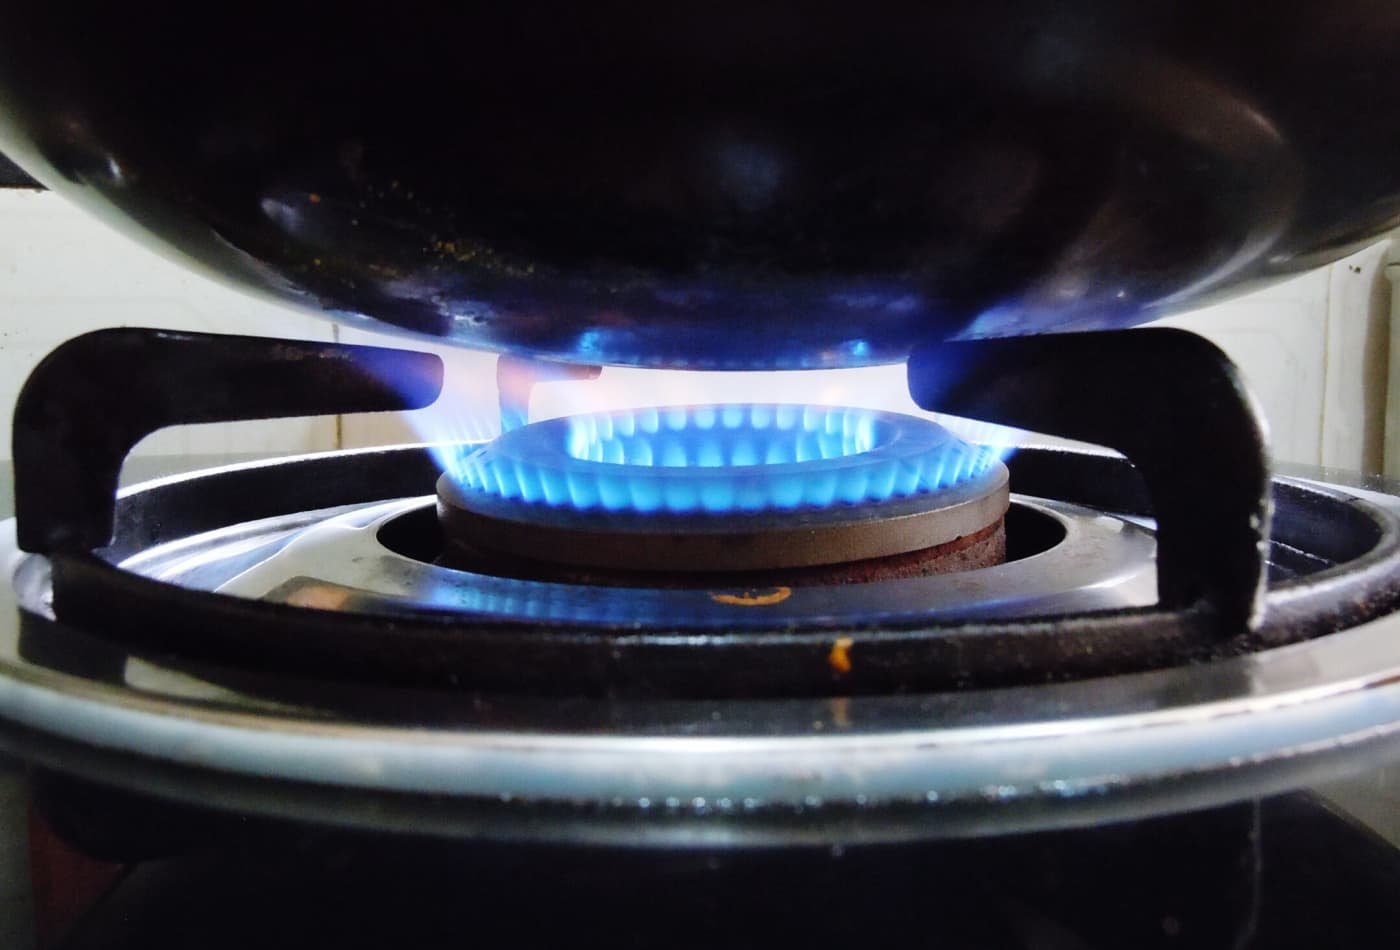 British energy firms fear collapse as Europe's gas crisis sees prices surge 250%